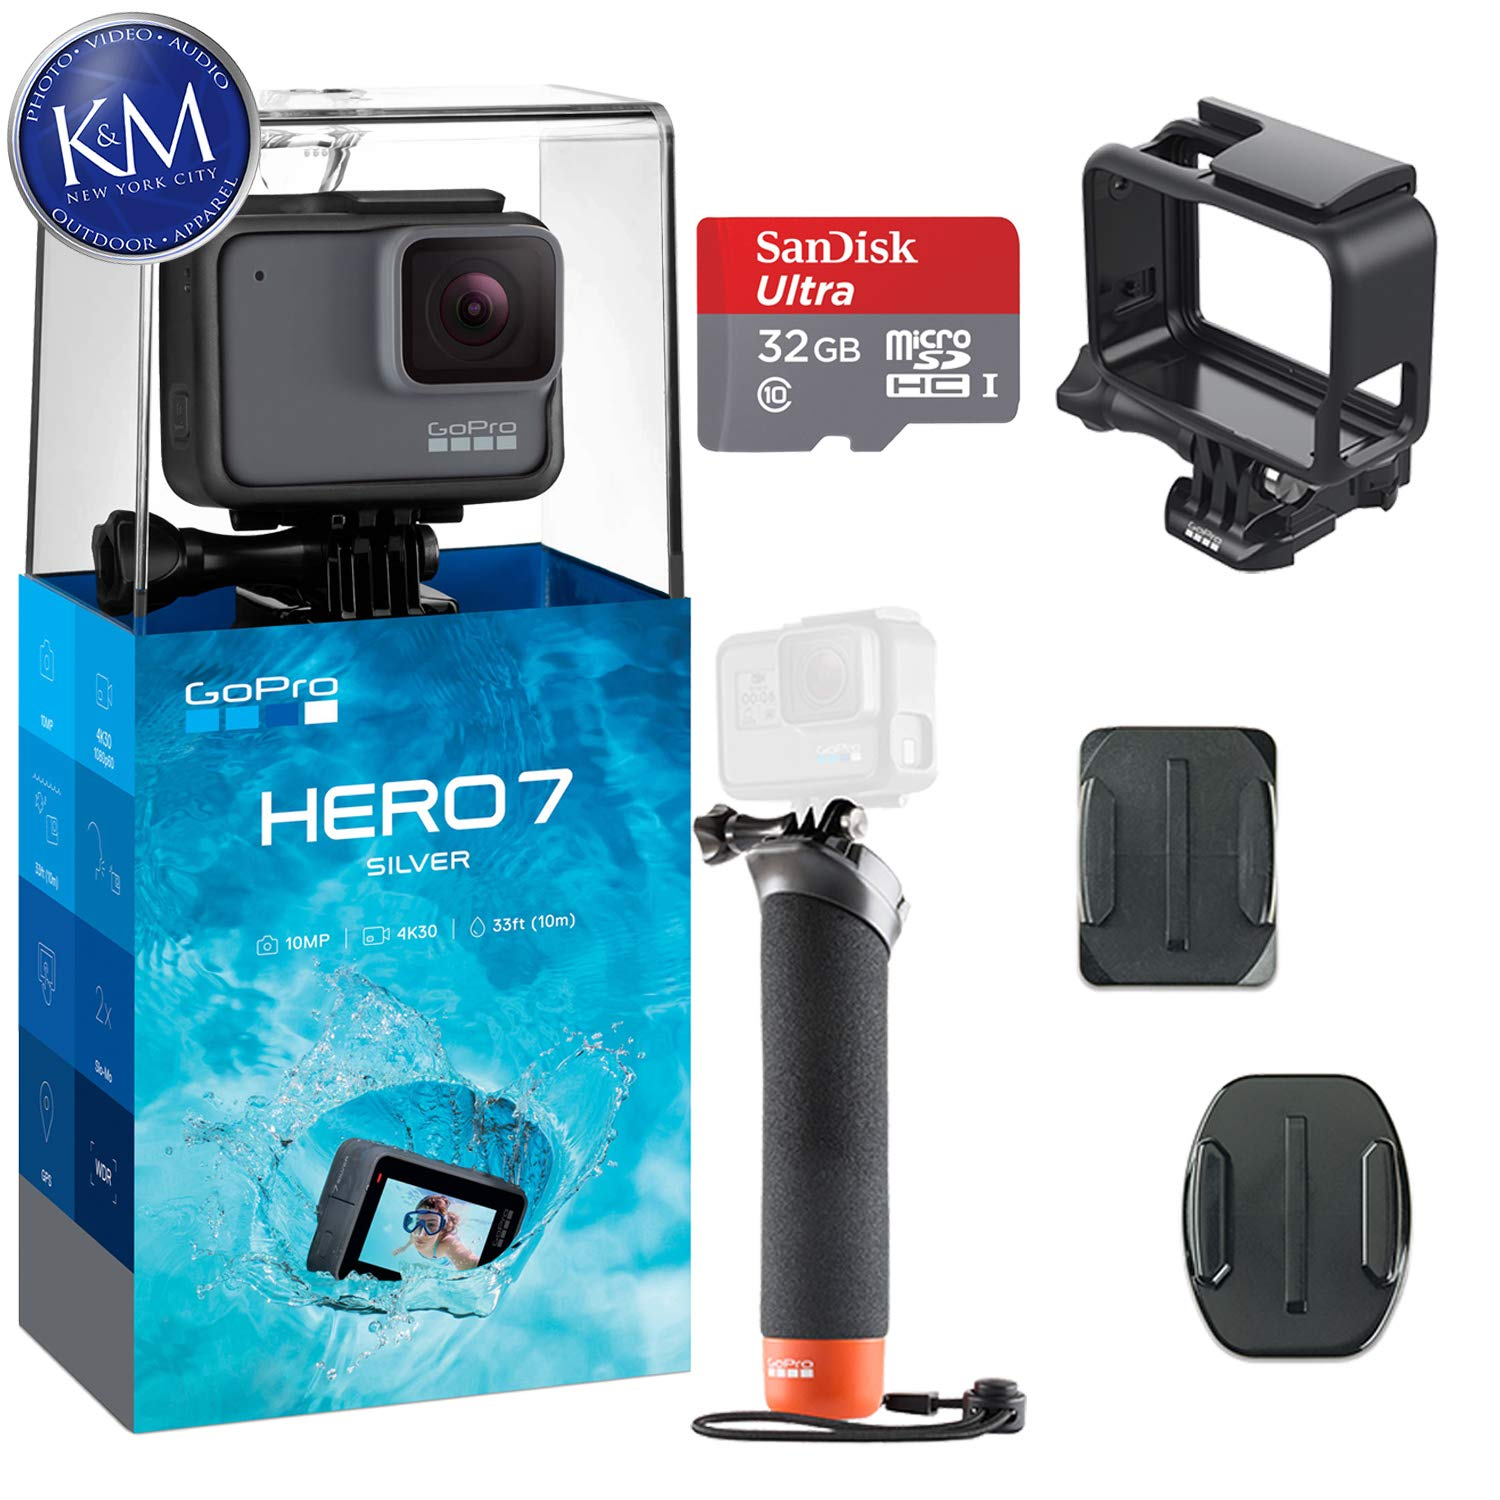 GoPro Hero 7 (Silver) Action Camera w/ 32GB Memory and Floating Grip Bundle by K&M